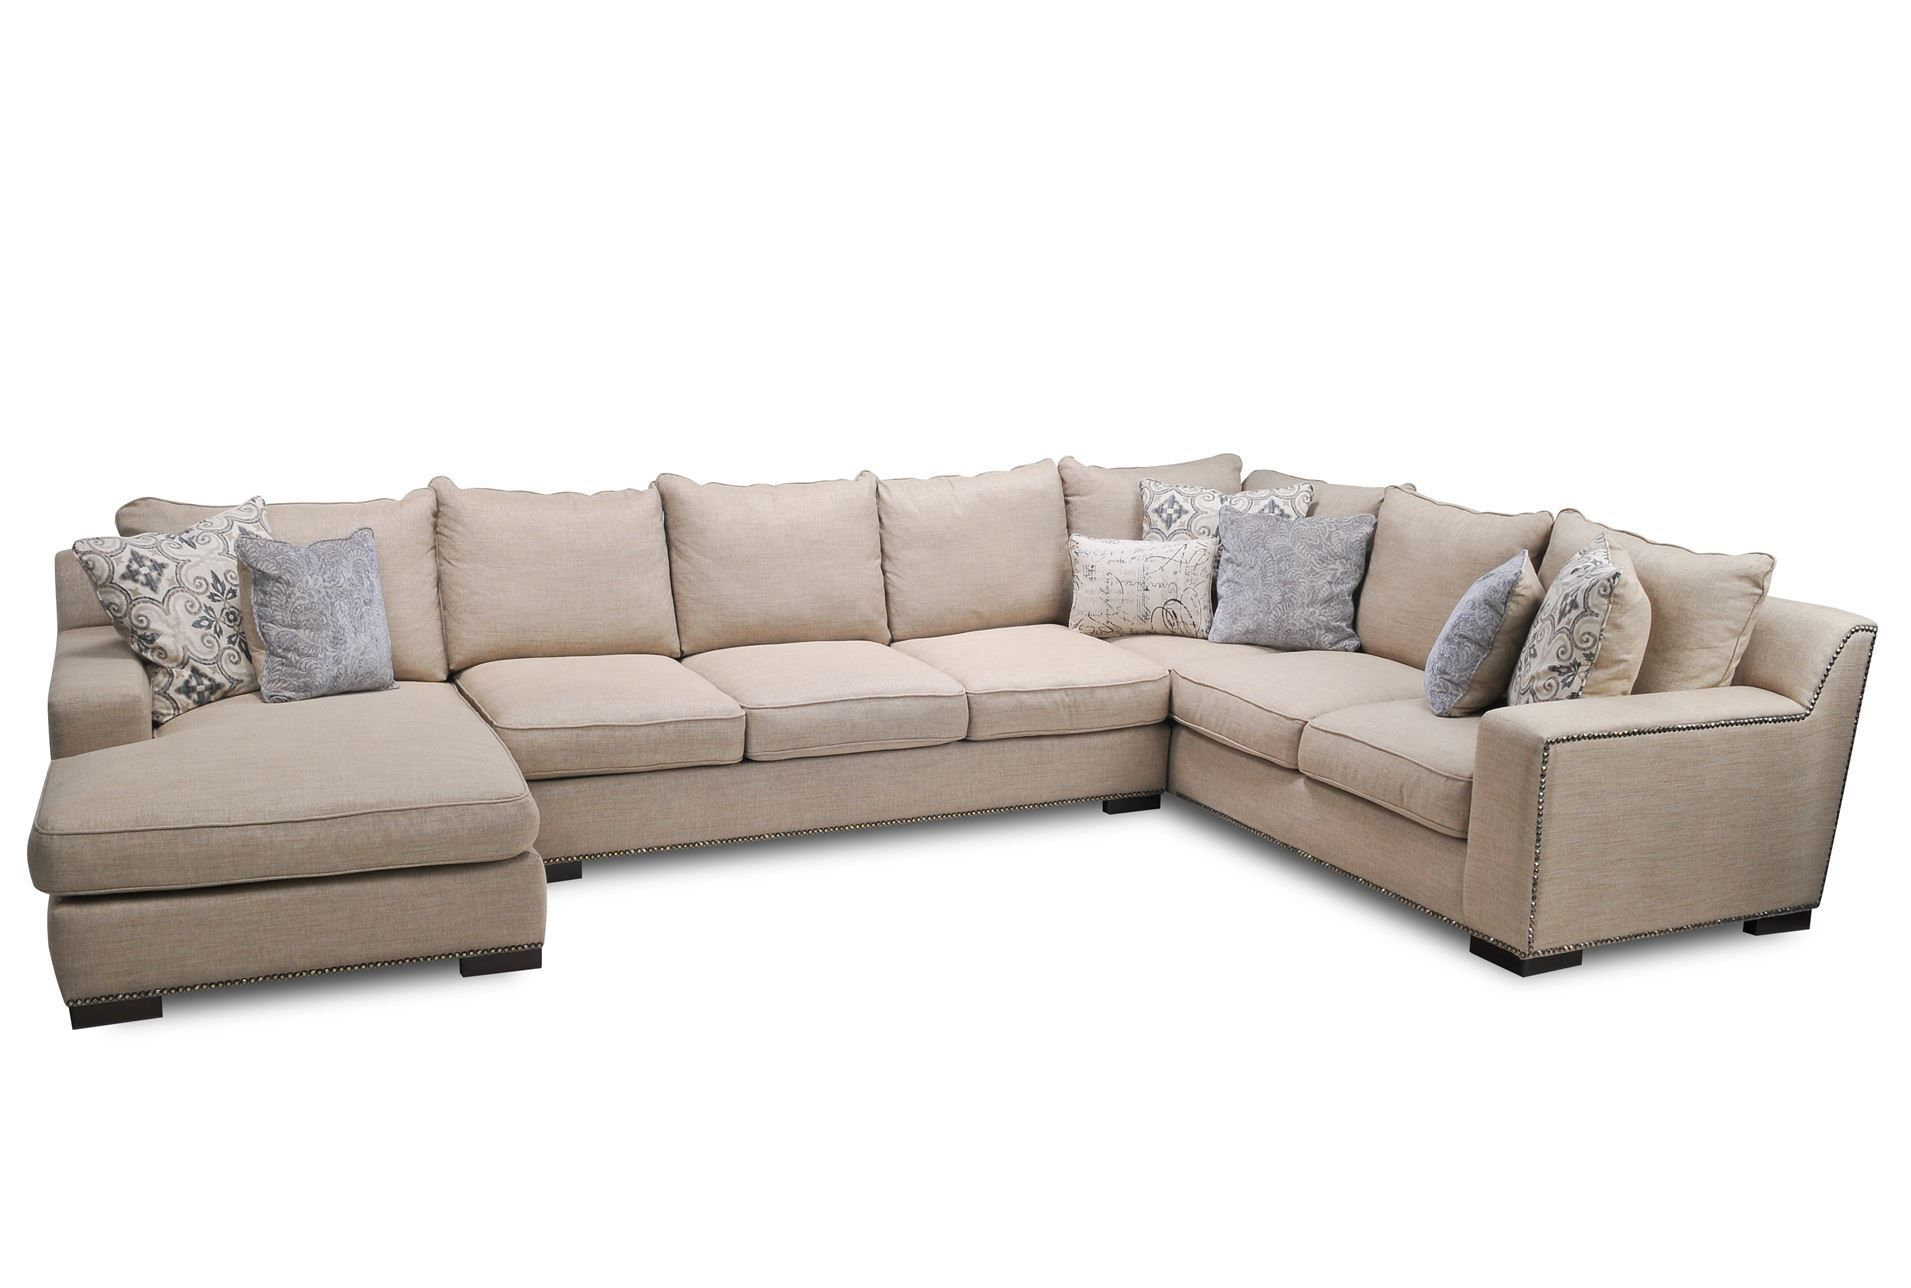 Sultan 3 Piece Sectional - Signature Another Living Spaces option. It is a lower price point than Crate and Barrel or Arhaus which will show up in the quality, but not sure how price conscious you want to be. It looks nice!